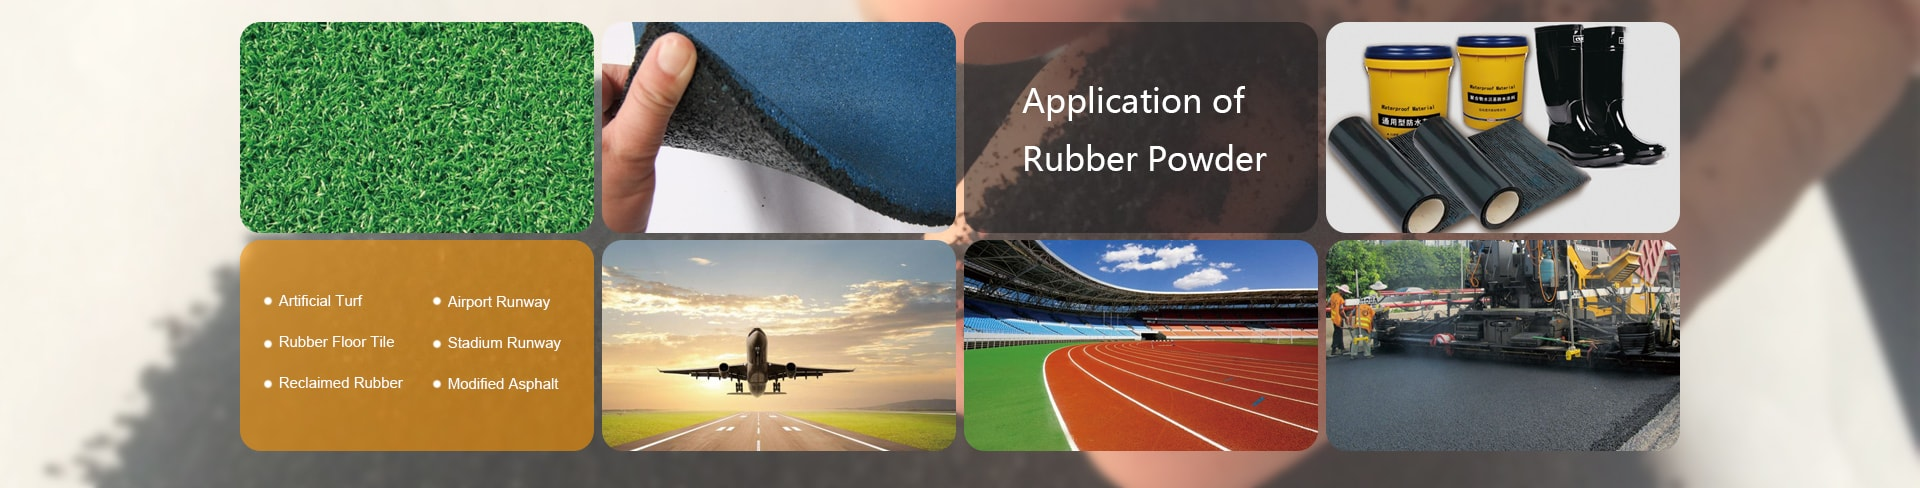 Application Rubber Powder